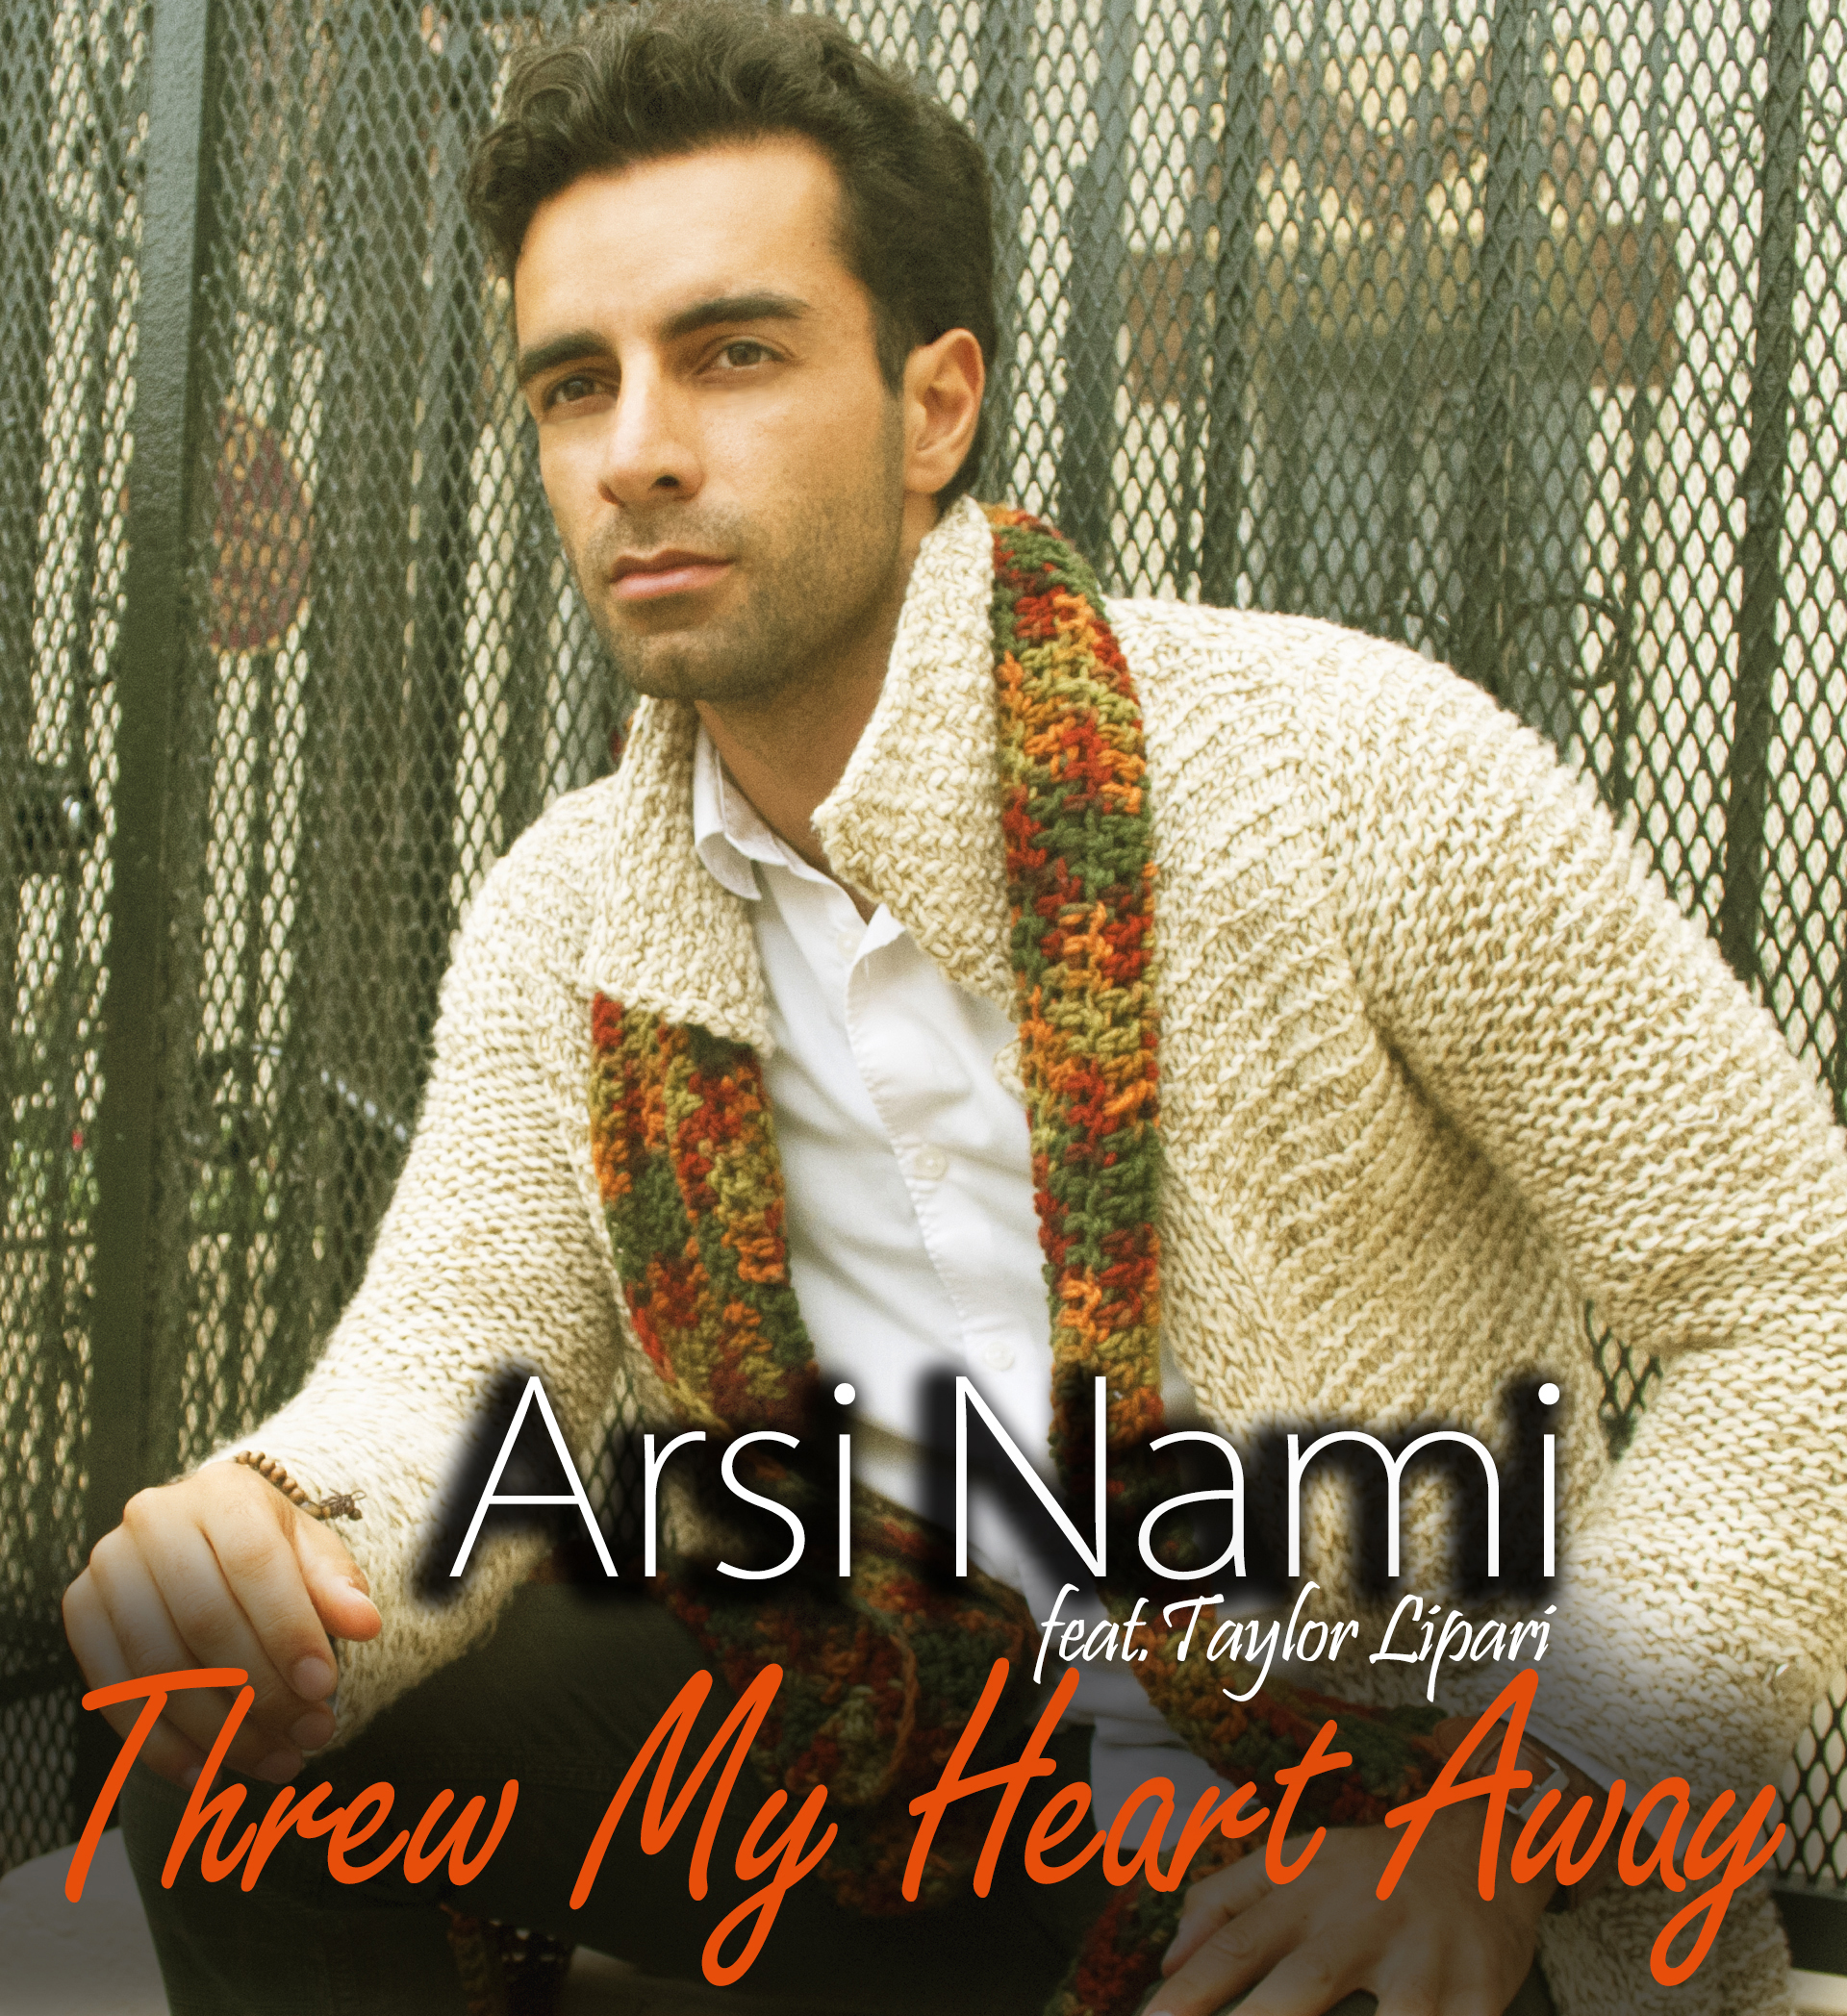 Arsi Nami - Threw My Heart Away